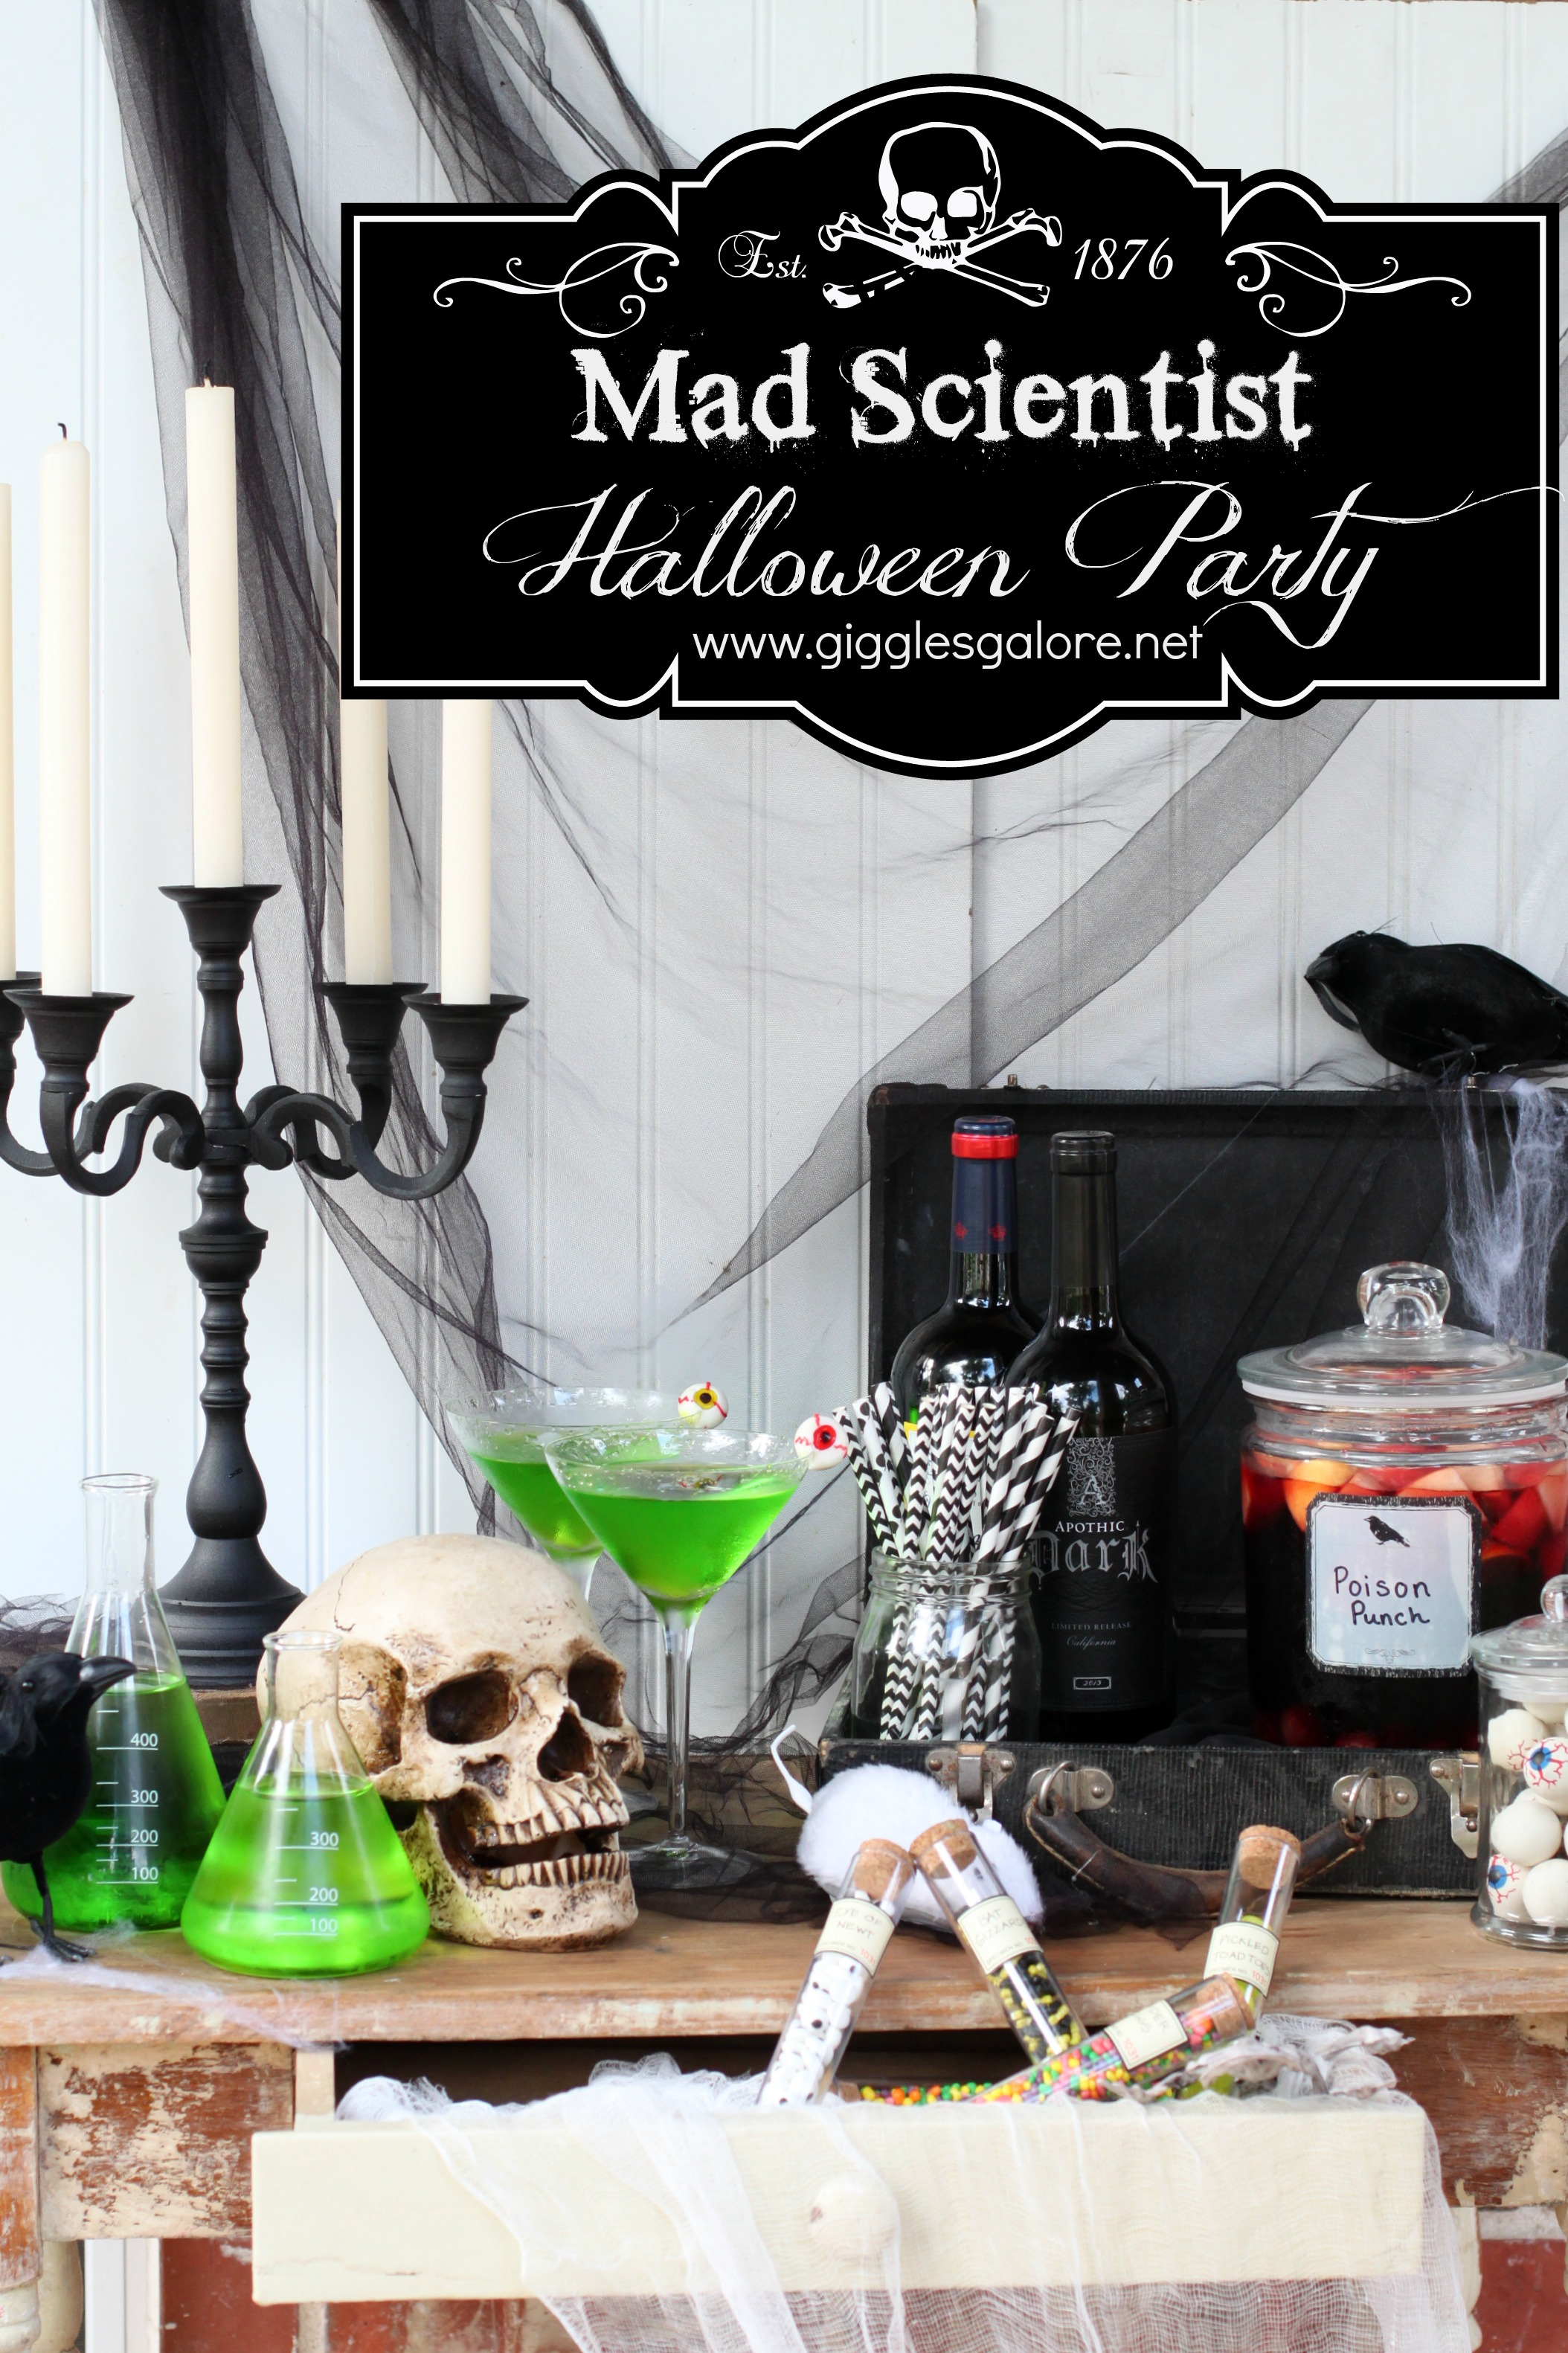 Minnie Mouse Bedroom Decorations Mad Scientist Halloween Party